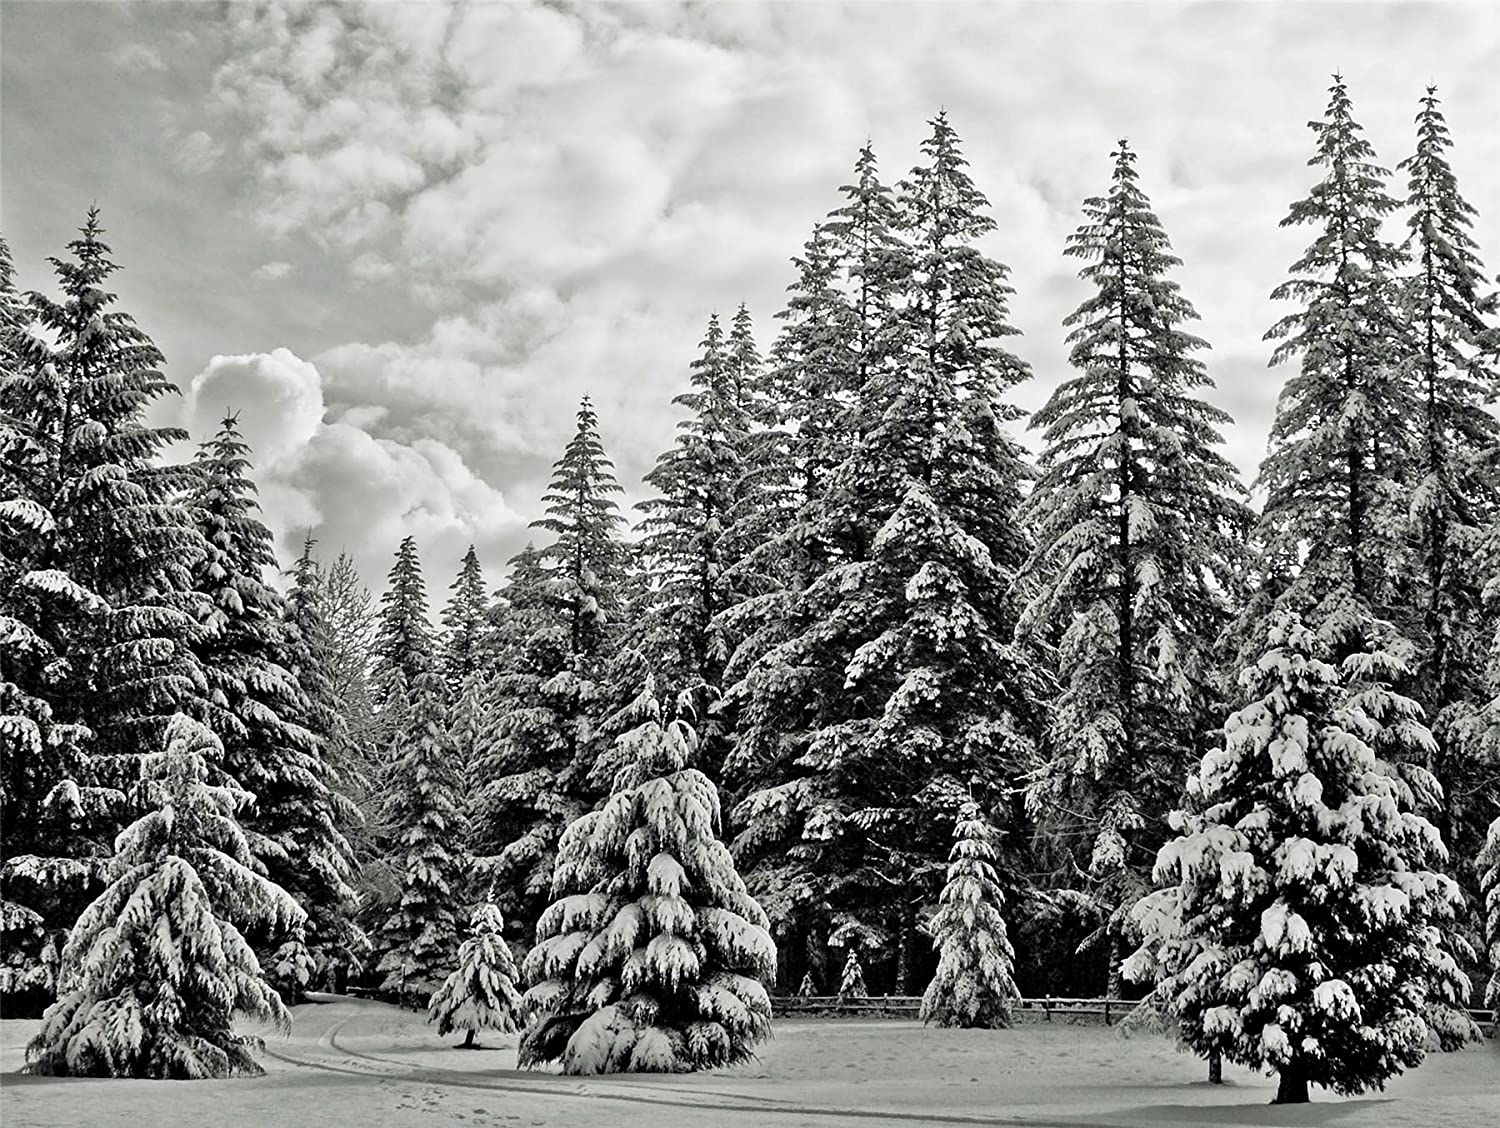 Snowy White Pine Forest